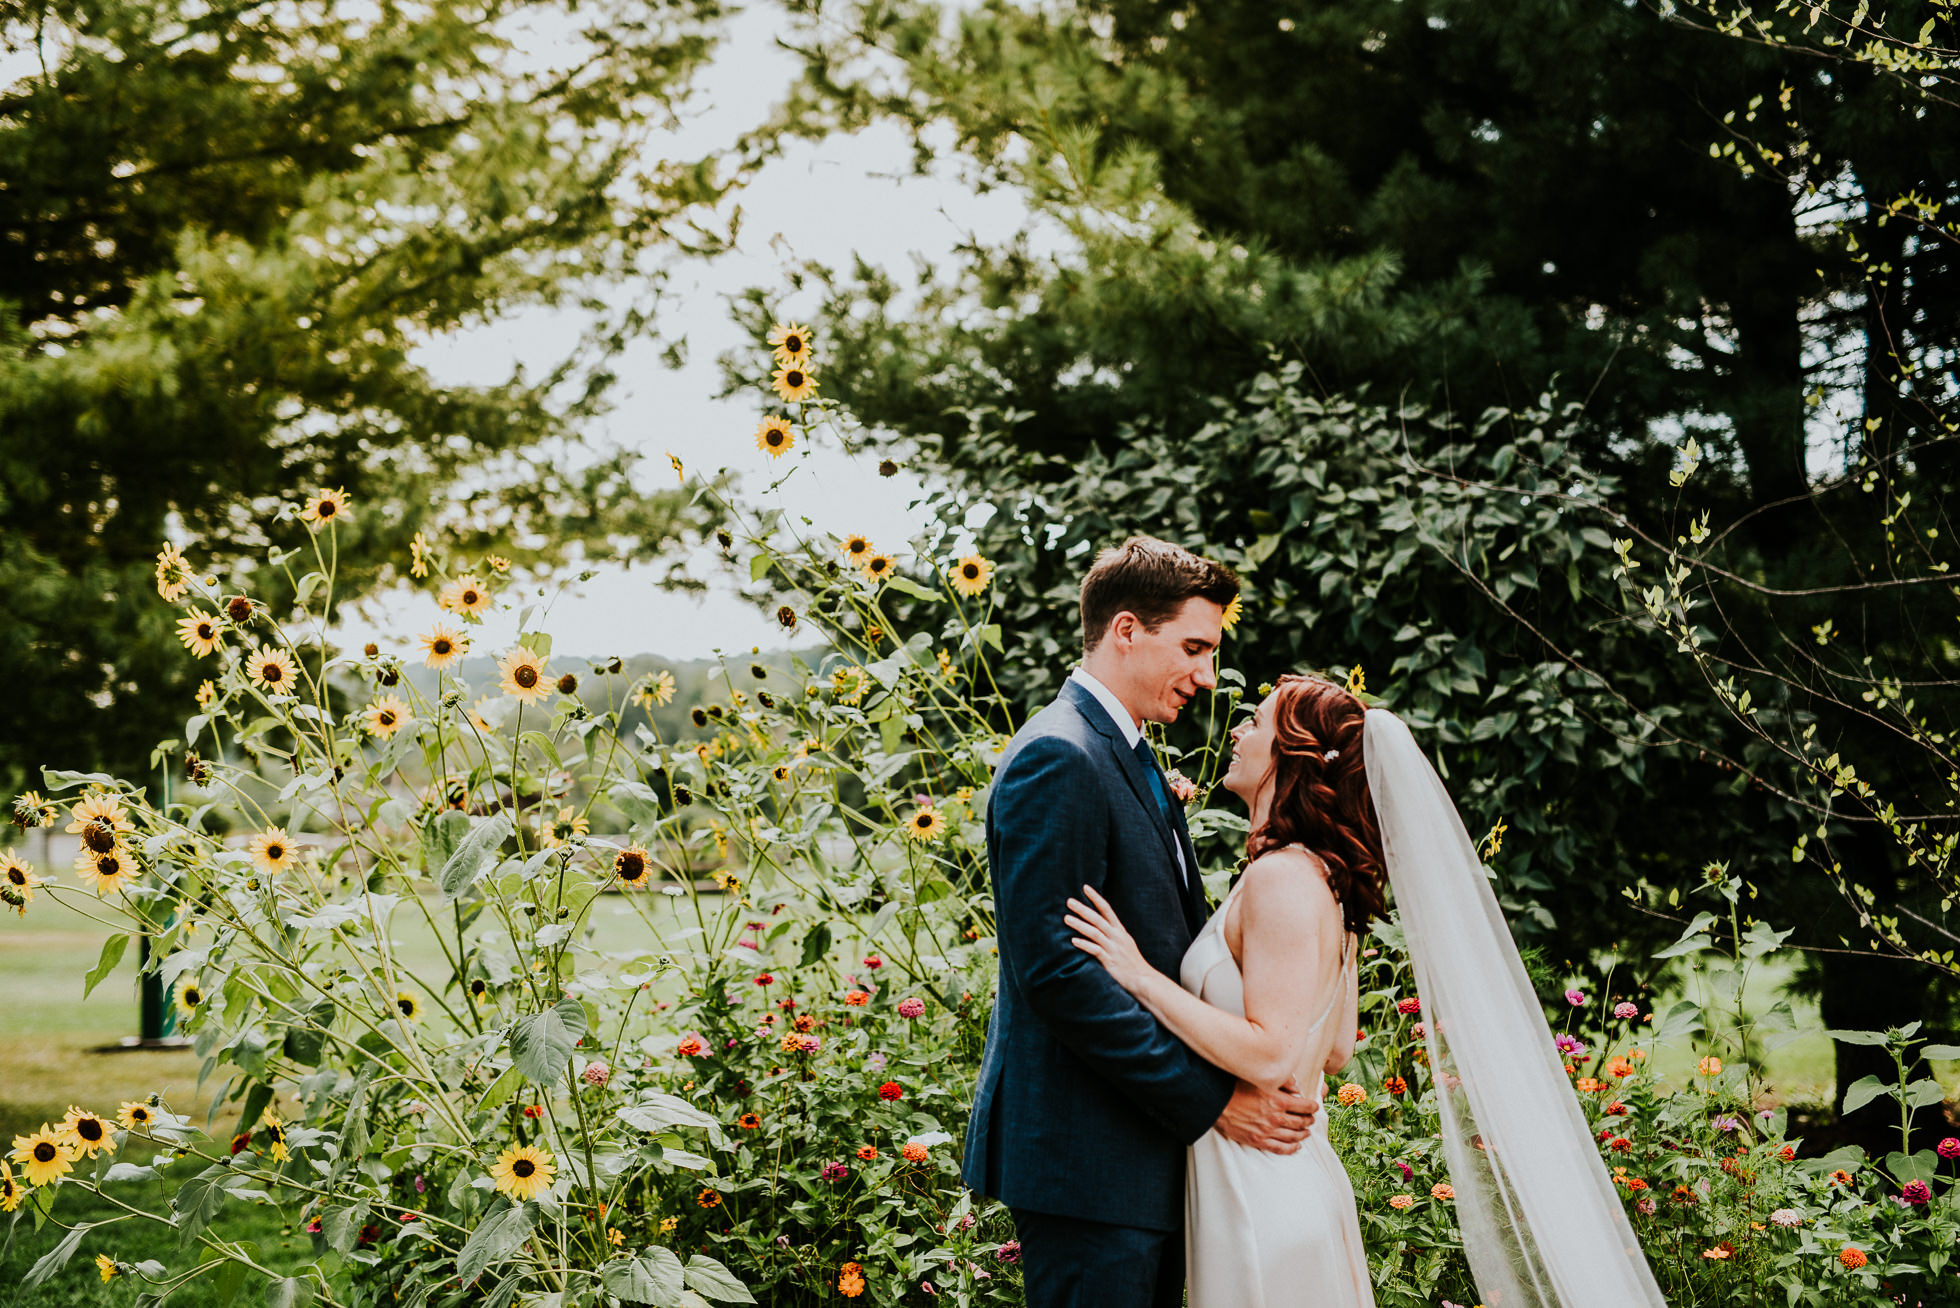 wedding portraits by flowers at olde tater barn wedding photographed by traverse the tides